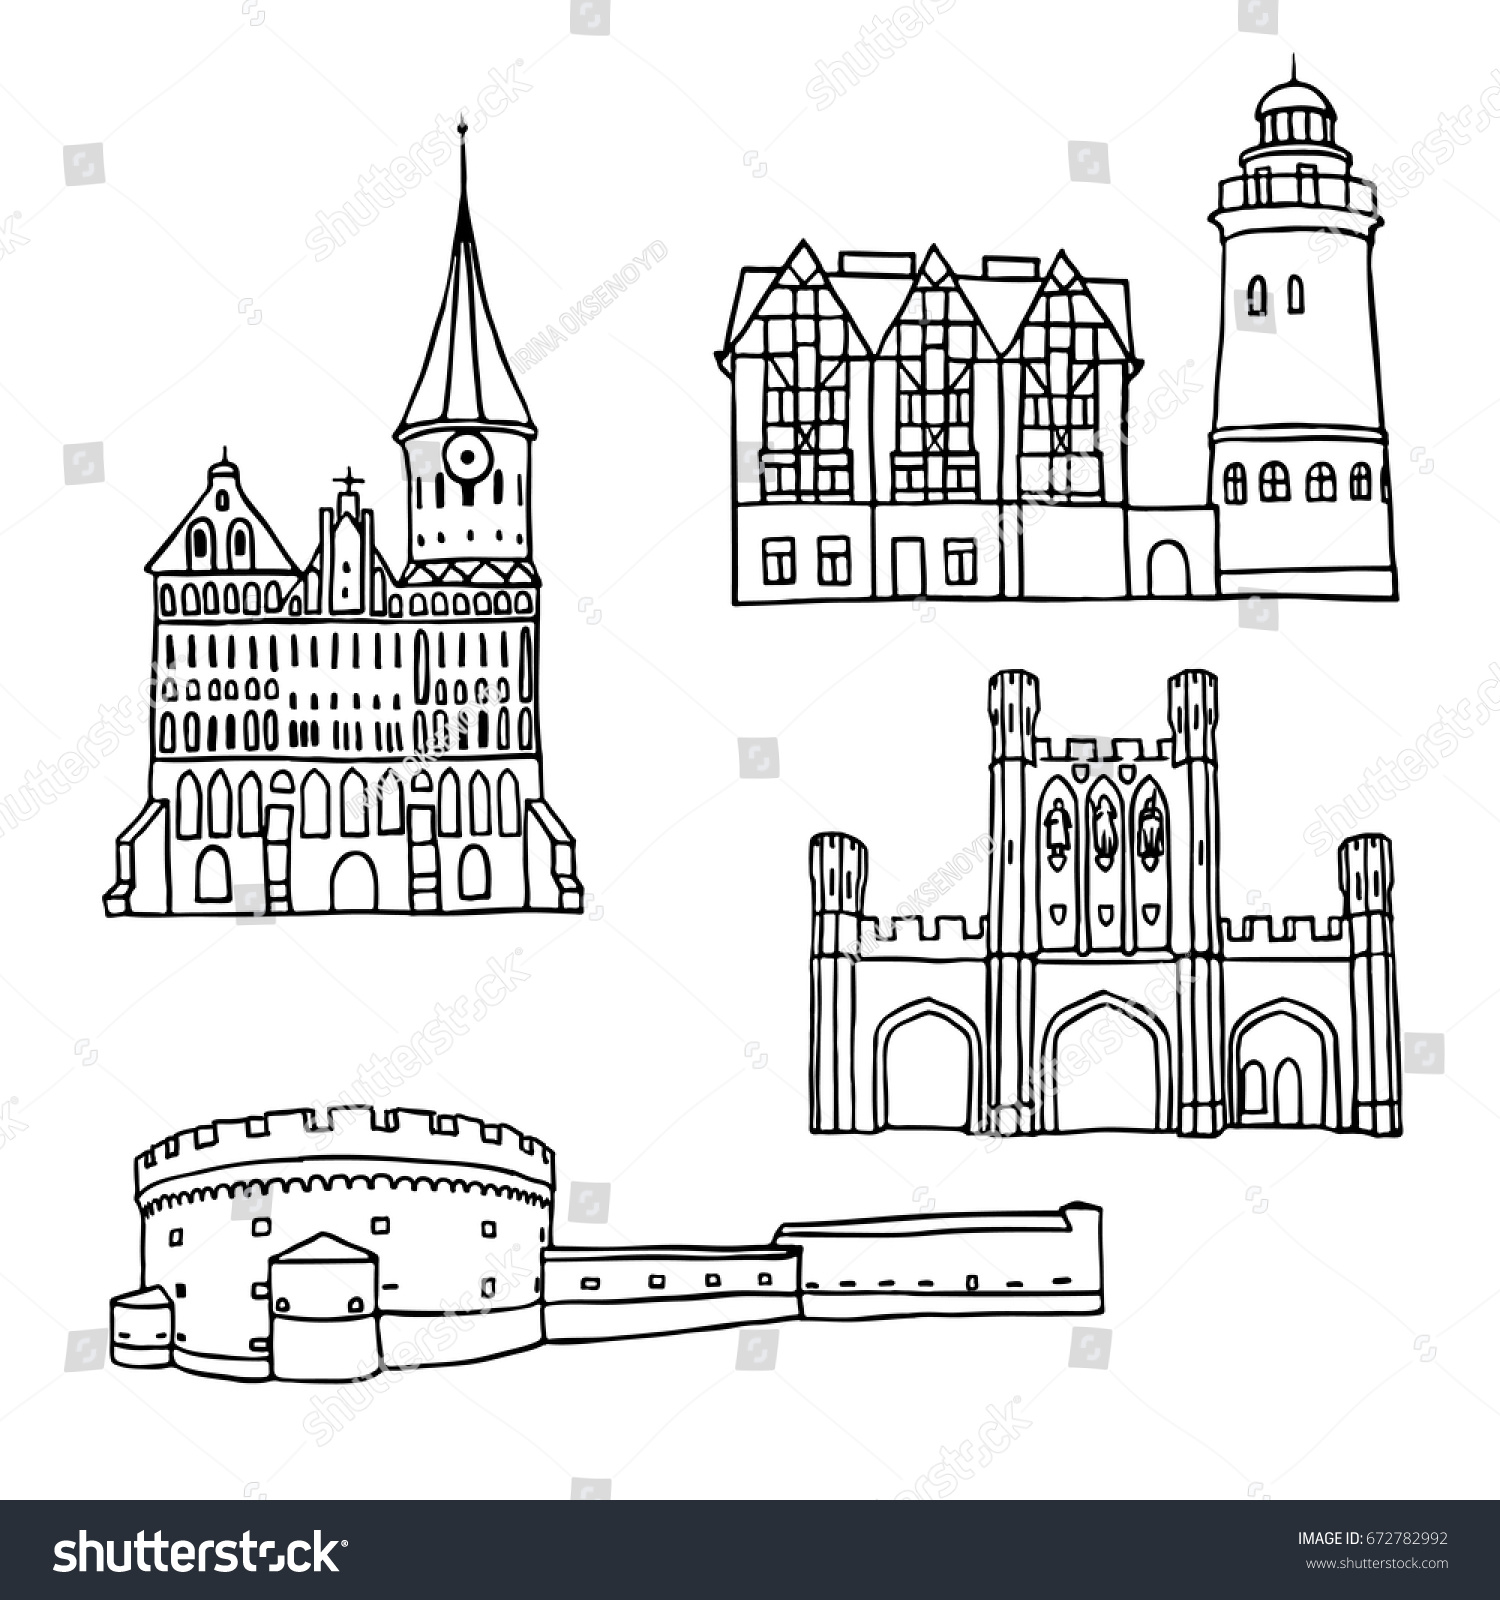 Black Pen Sketches And Silhouettes Of Famous Architecture Set The Landmarks Kaliningrad City